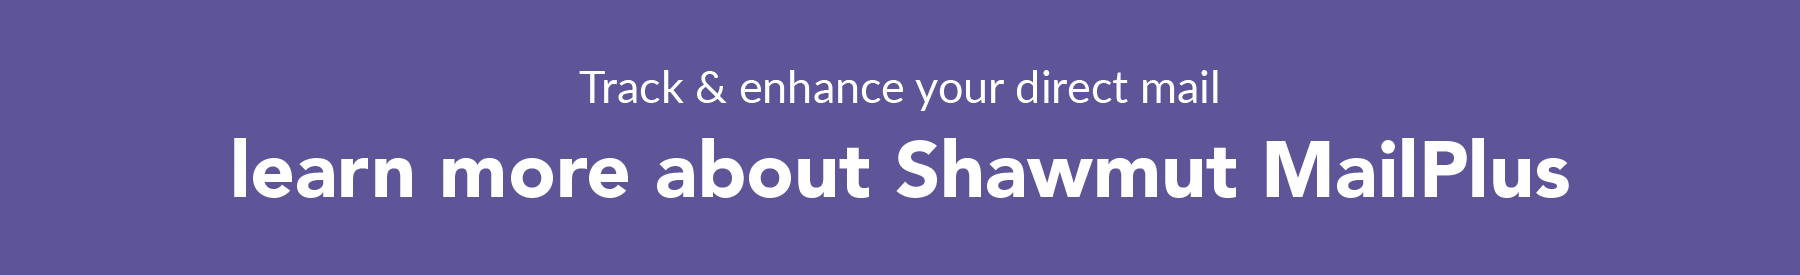 Learn more about Shawmut MailPlus